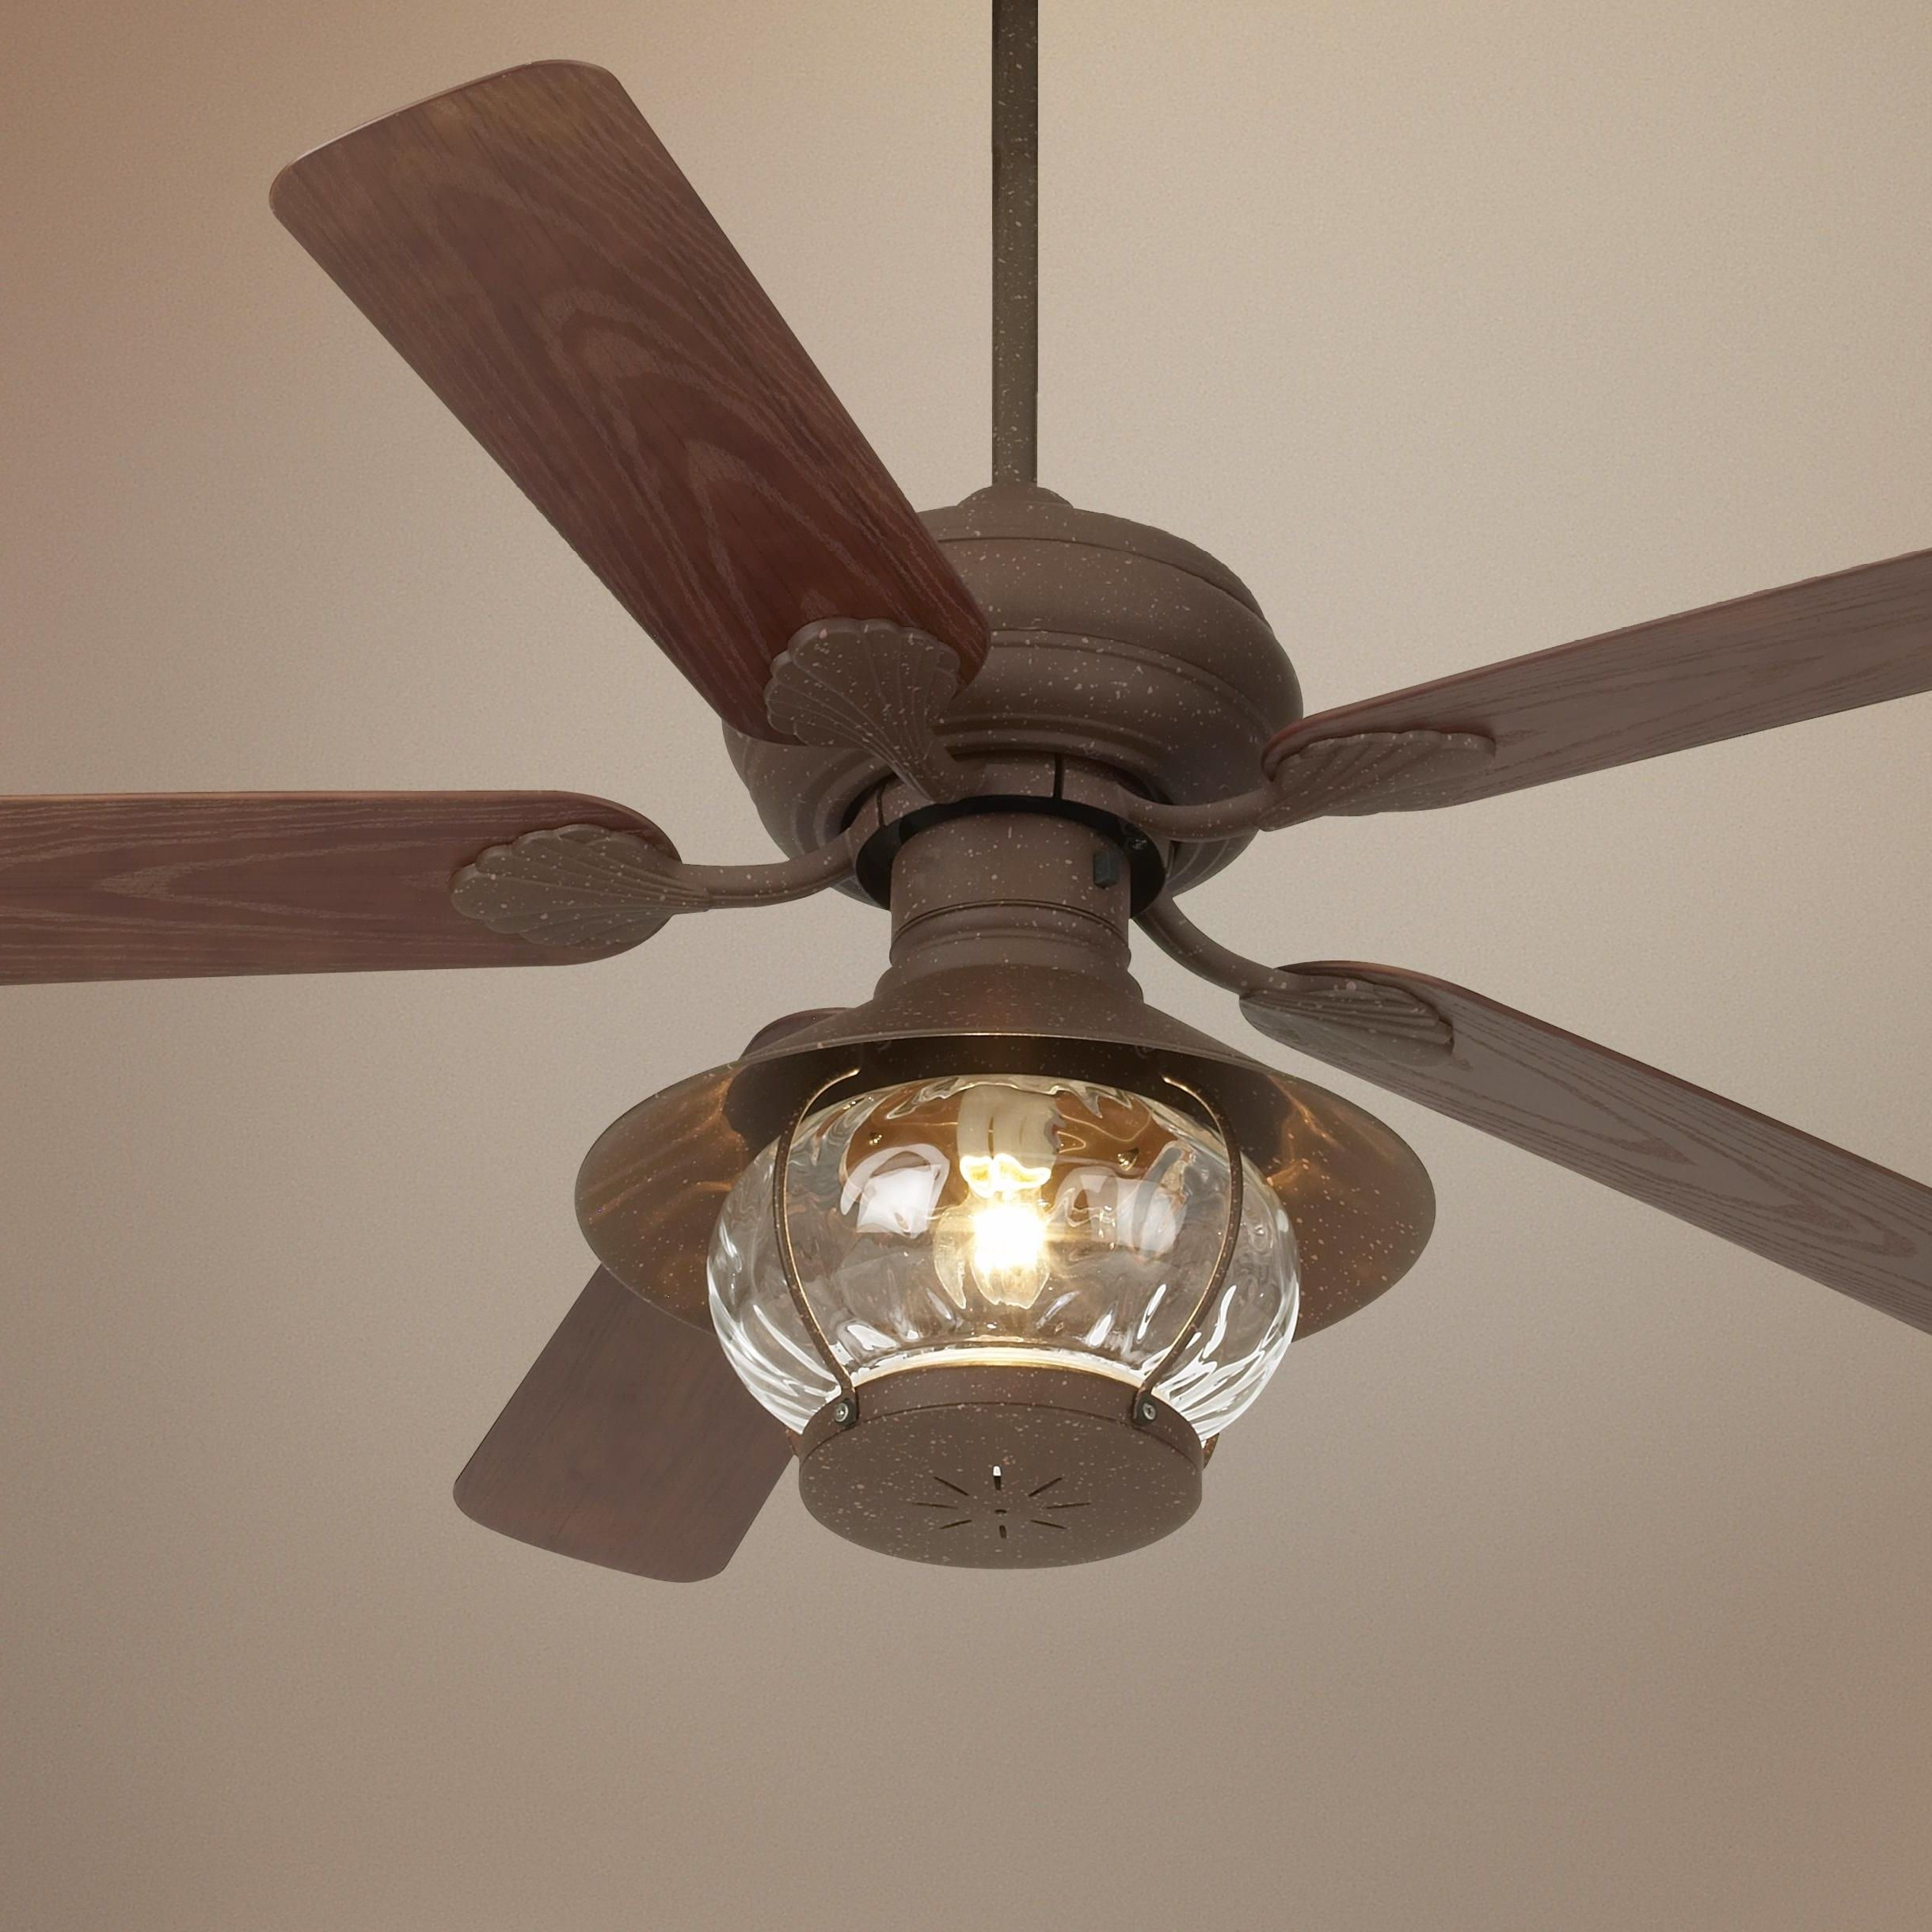 Lantern Style Ceiling Fan Intended For 89 Astounding Rustic